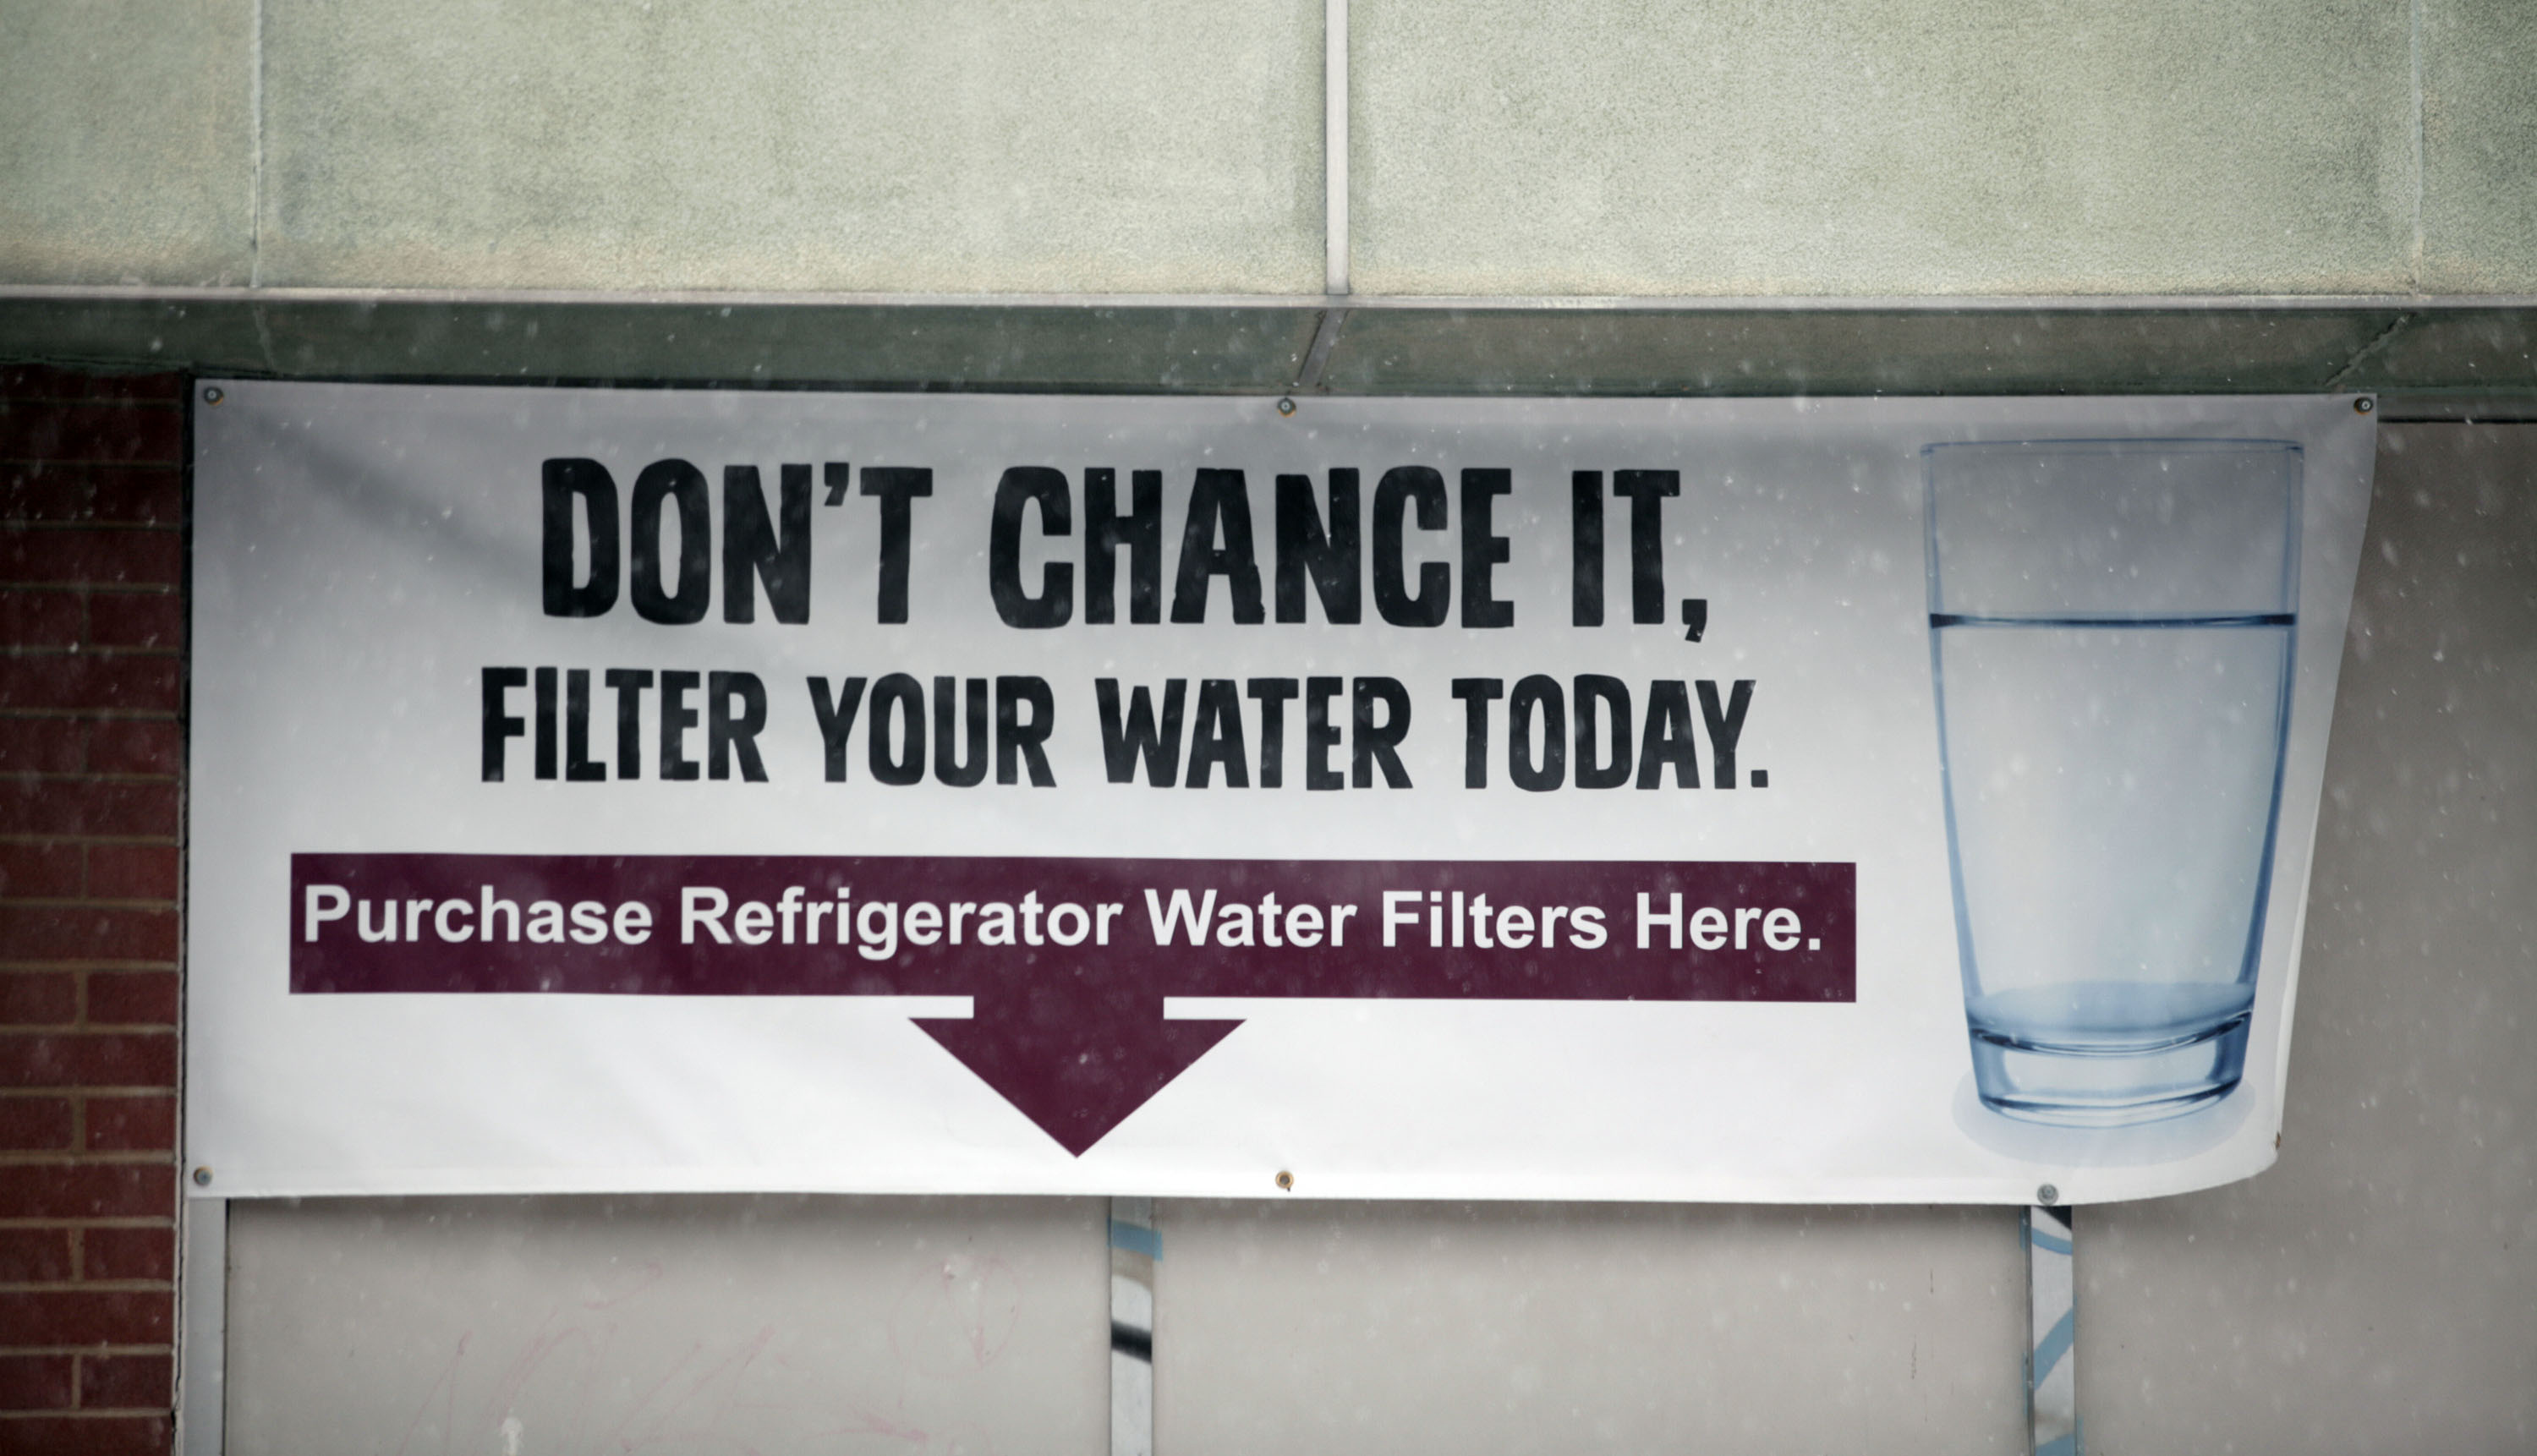 FLINT, MI - JANUARY 17:  A sign on a the front of a building warns residents to filter their water January 17, 2016 in Flint, Michigan. U.S. President Barack Obama declared a federal emergency in Michigan, which will free up federal aid to help the city of Flint with lead contaminated drinking water. Michigan Gov. Rick Snyder requested emergency and disaster declarations after activating the National Guard to help the American Red Cross distribute water to residents.